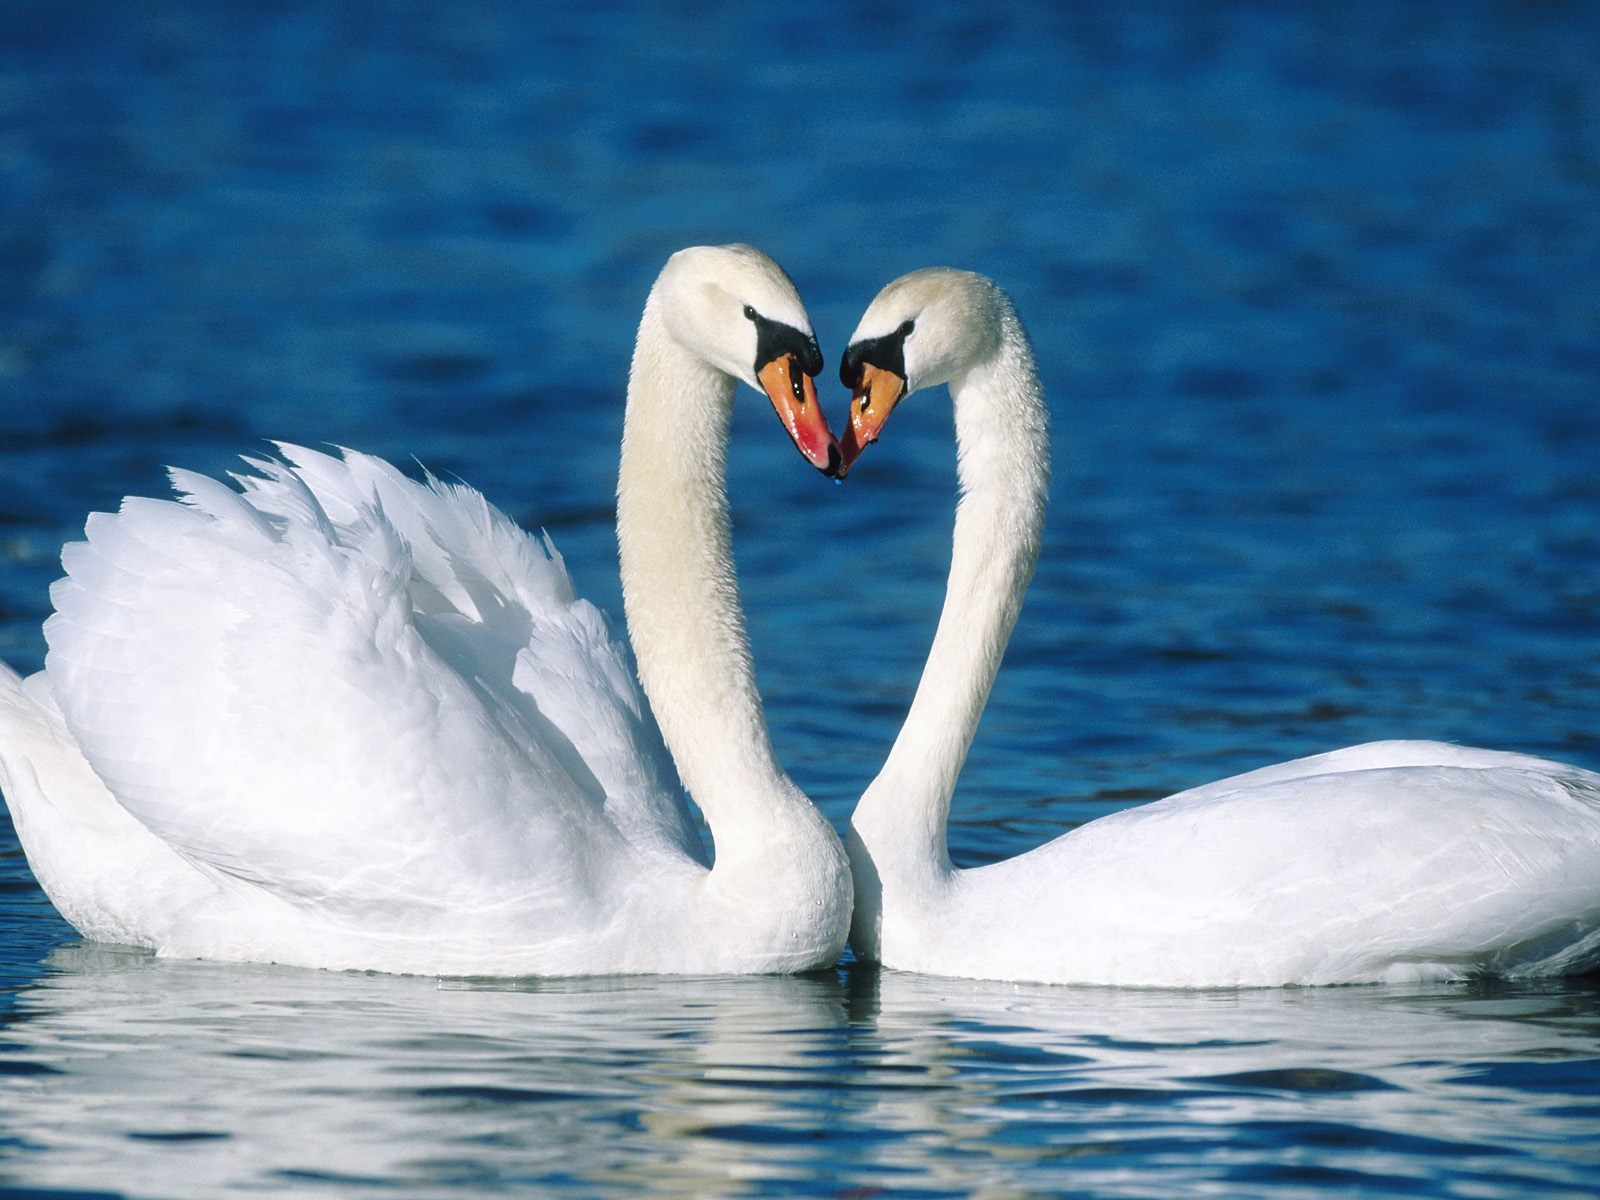 Swans, despite their enticing beauty, can be very ferocious and damaging animals. Photo